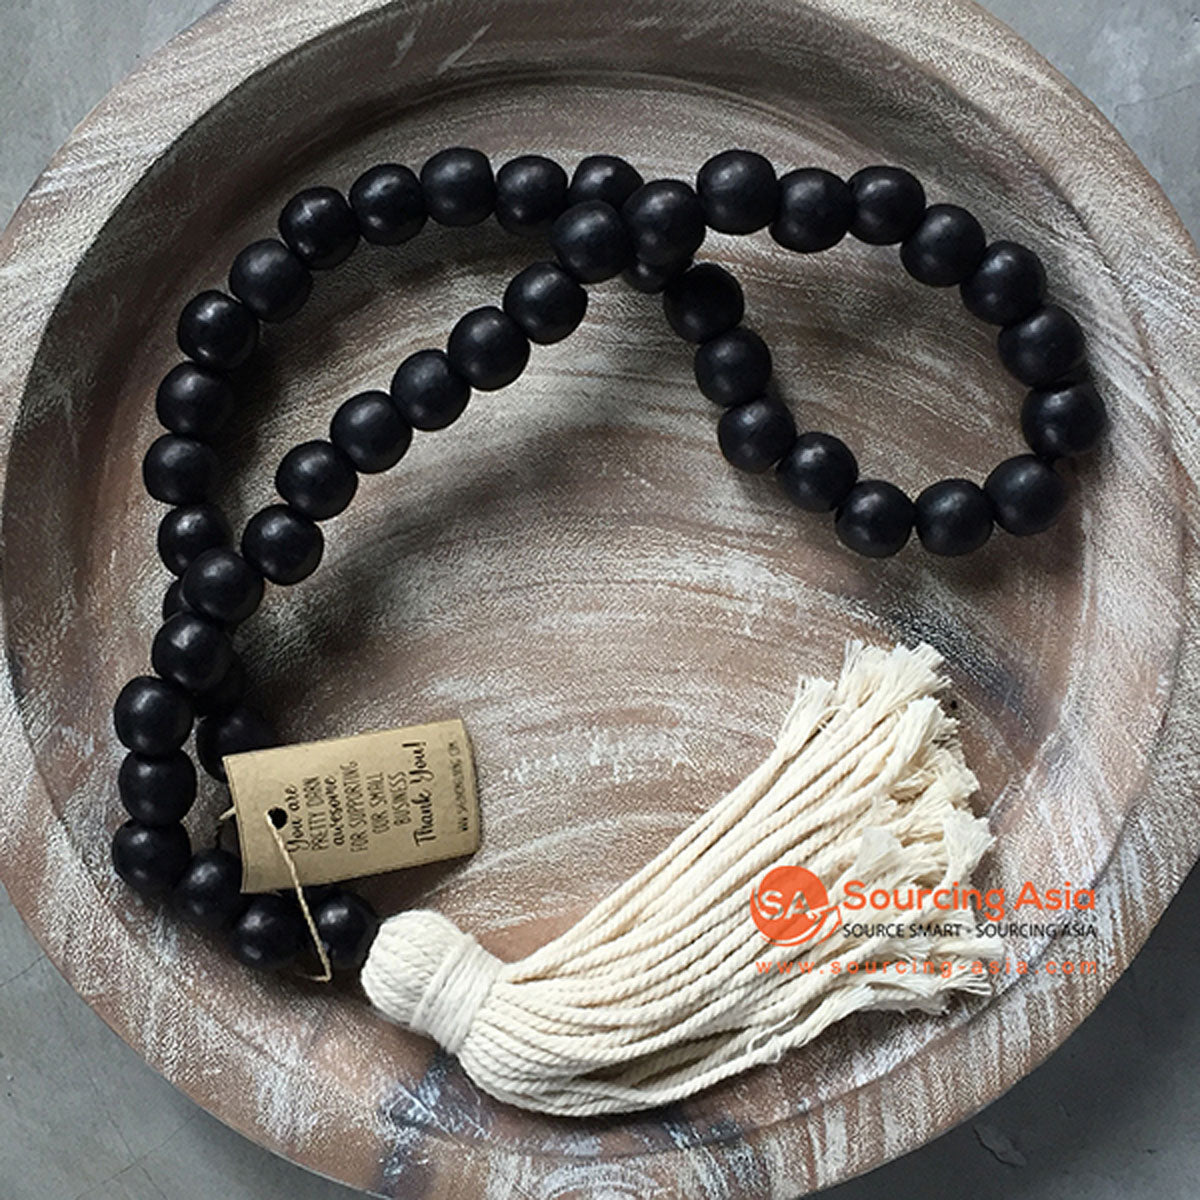 SHL047 BLACK TIMBER BEADS DECORATIVE TASSEL WITH WHITE GARLAND